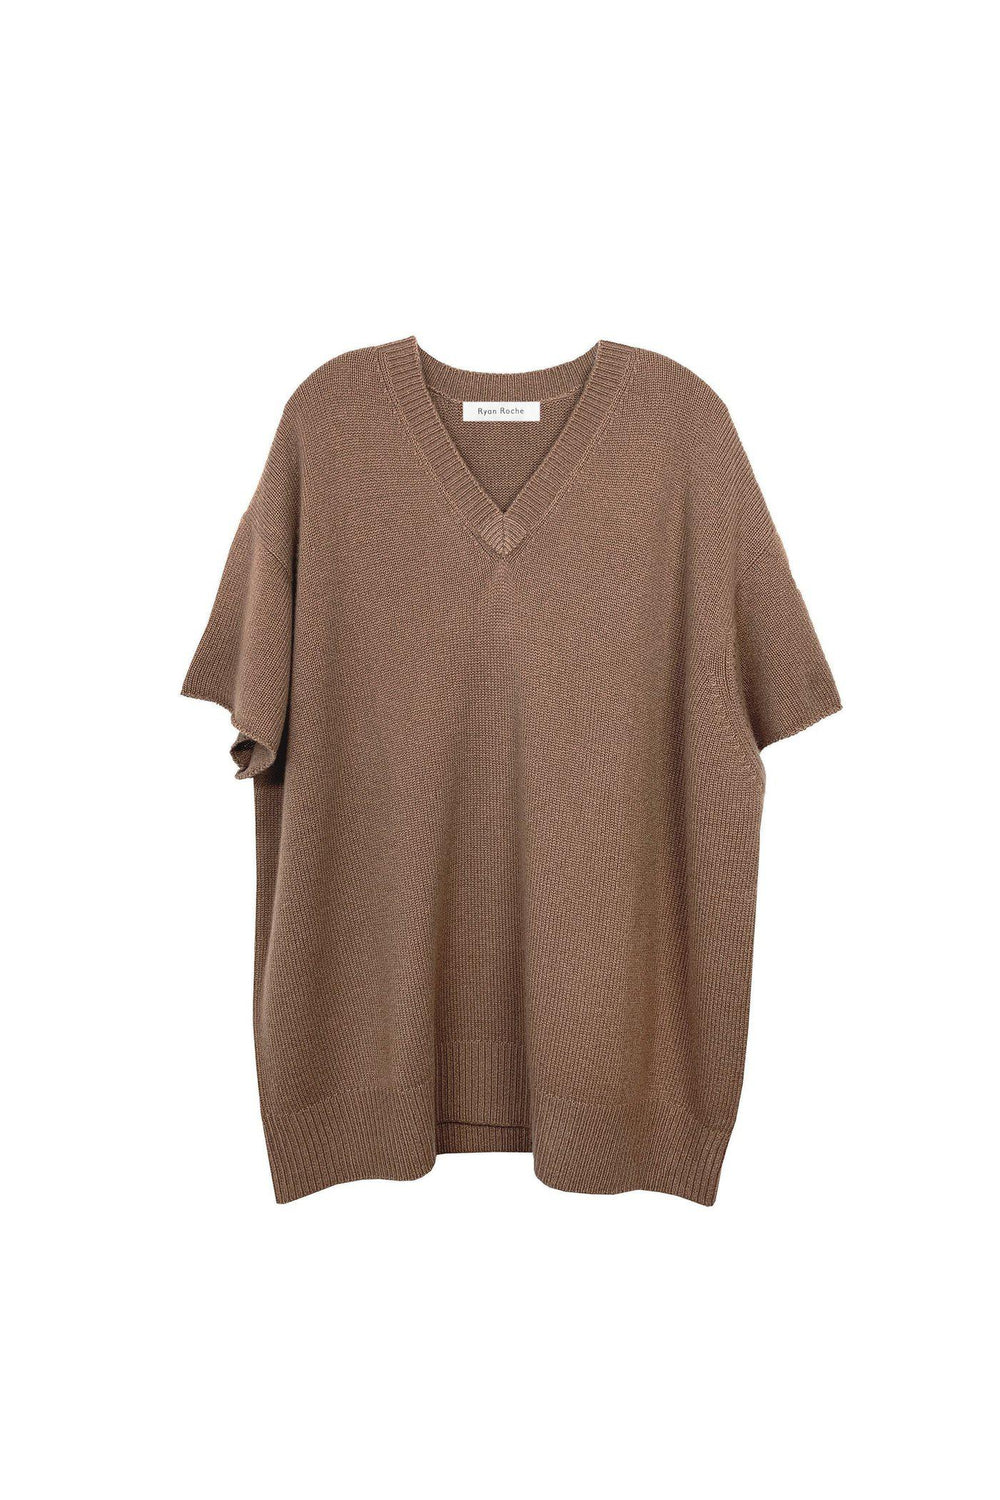 Oversized Sweater by Ryan Roche, available on ryan-roche.com for $625 Angelina Jolie Top Exact Product